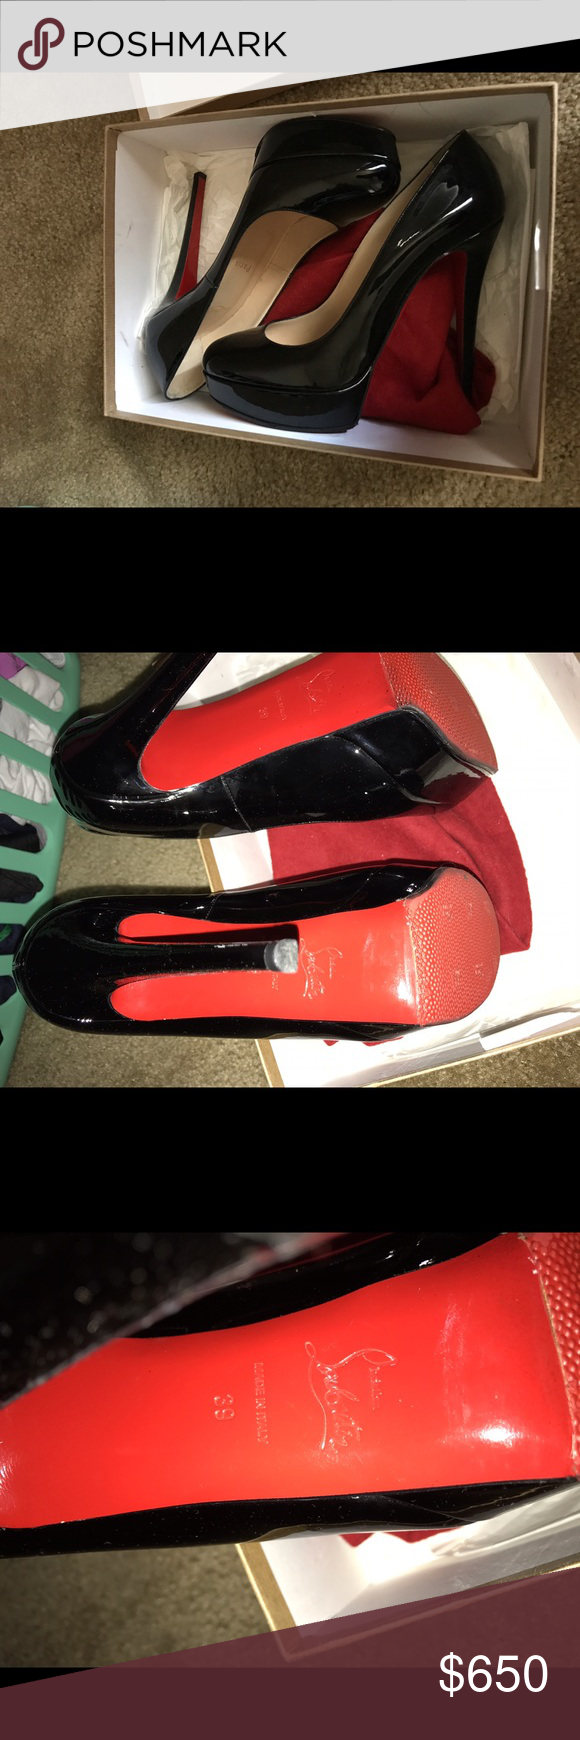 Christian Louboutin Bianca 140 Patent Size 39 (9 us) my fav shoes only wore them twice :( idk why all of a sudden they don't fit and being a mom of two I don't go anywhere lol Christian Louboutin Shoes Heels